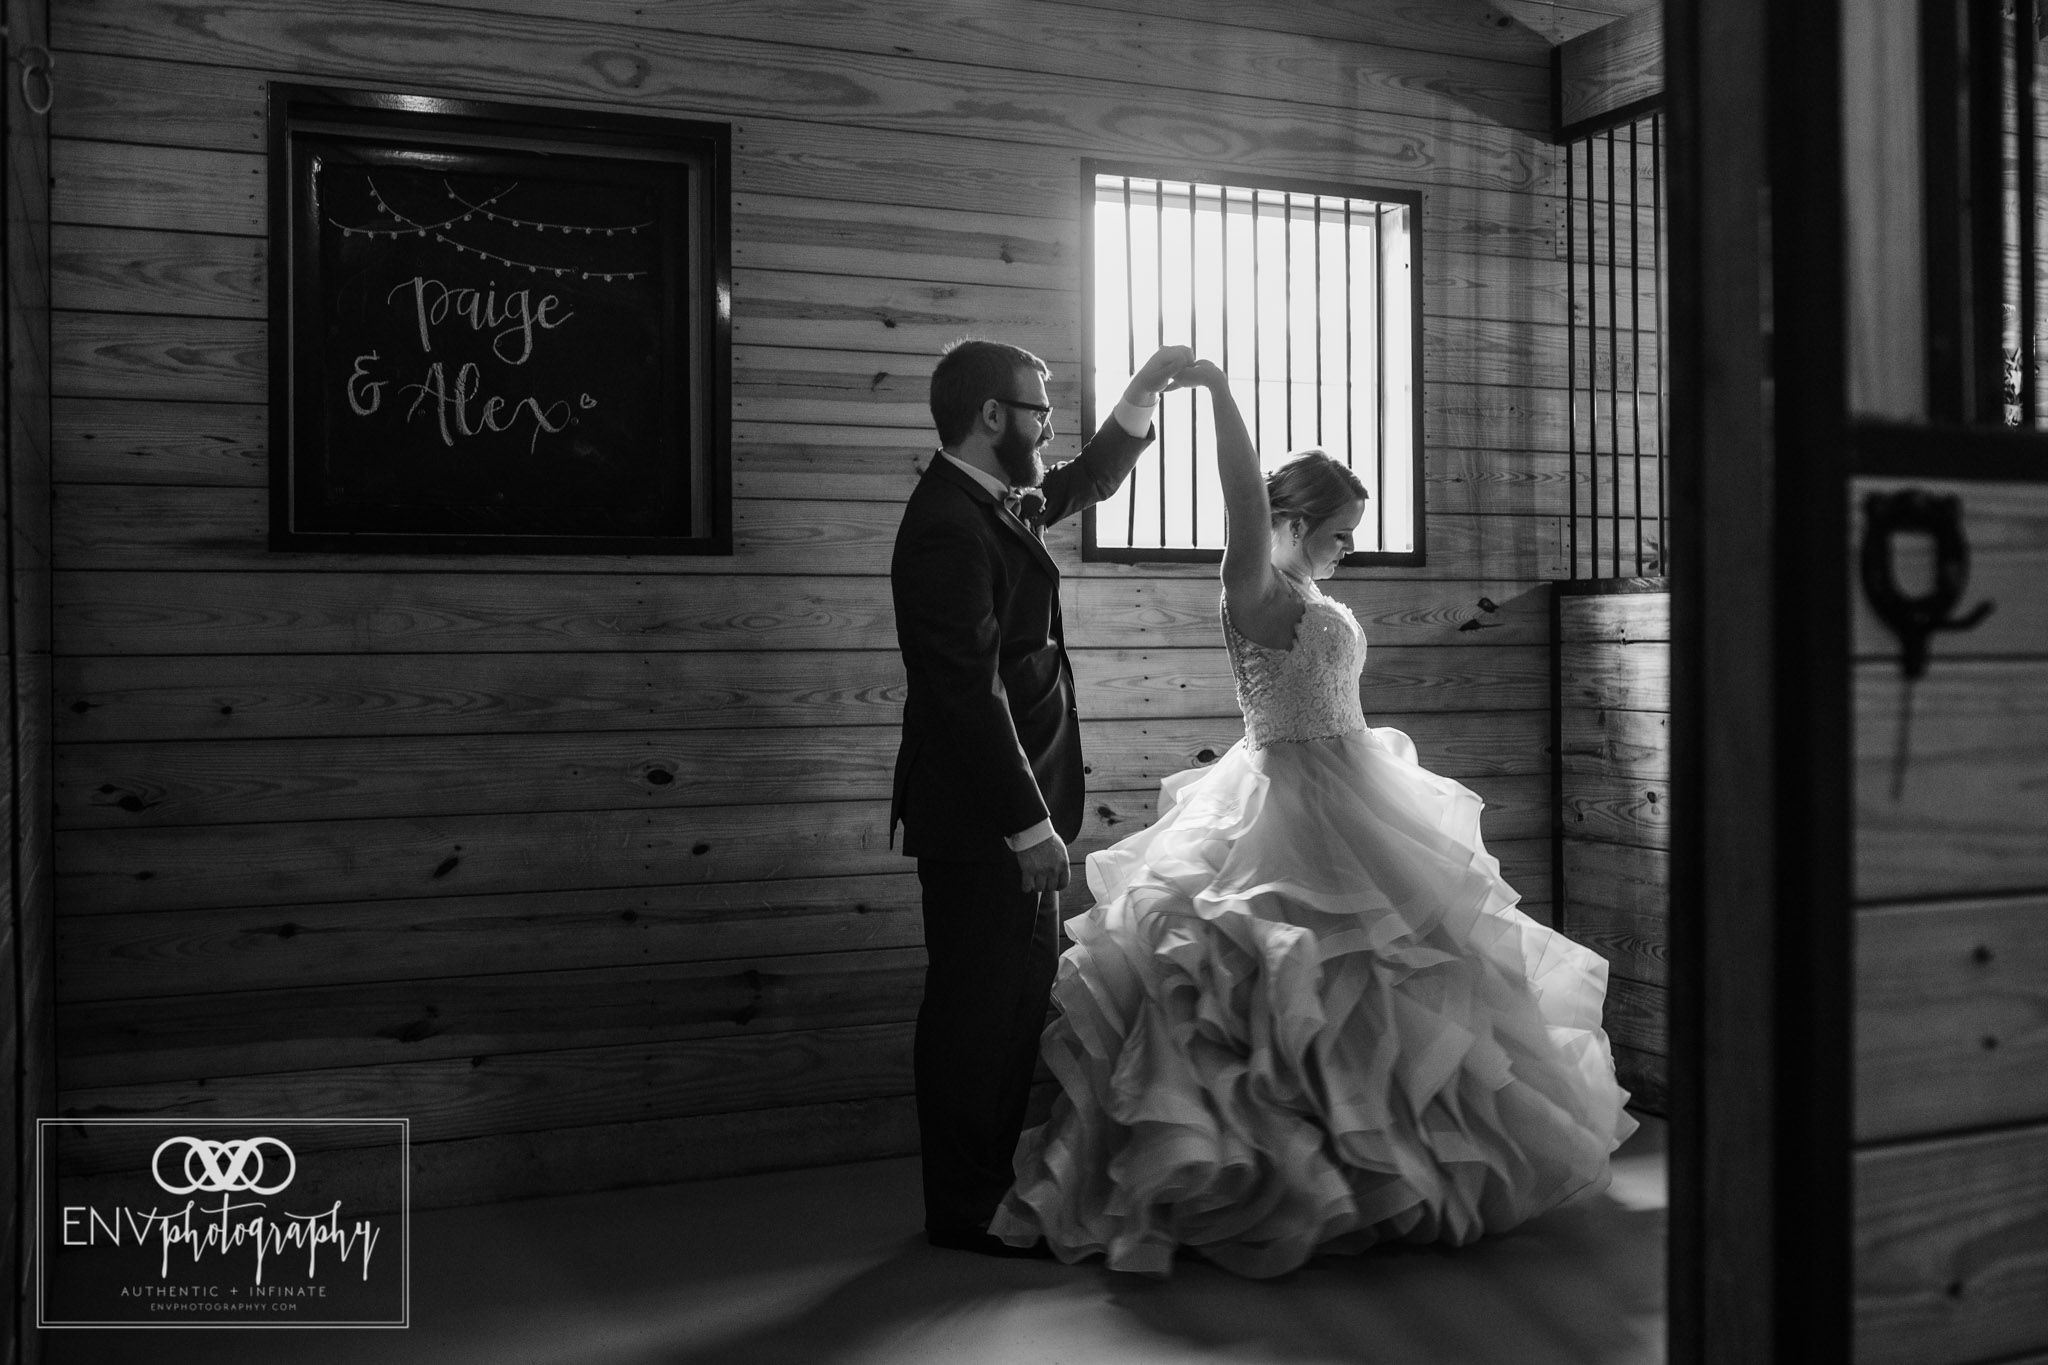 mount vernon columbus ohio irongate equestrian center wedding photographer (52).jpg